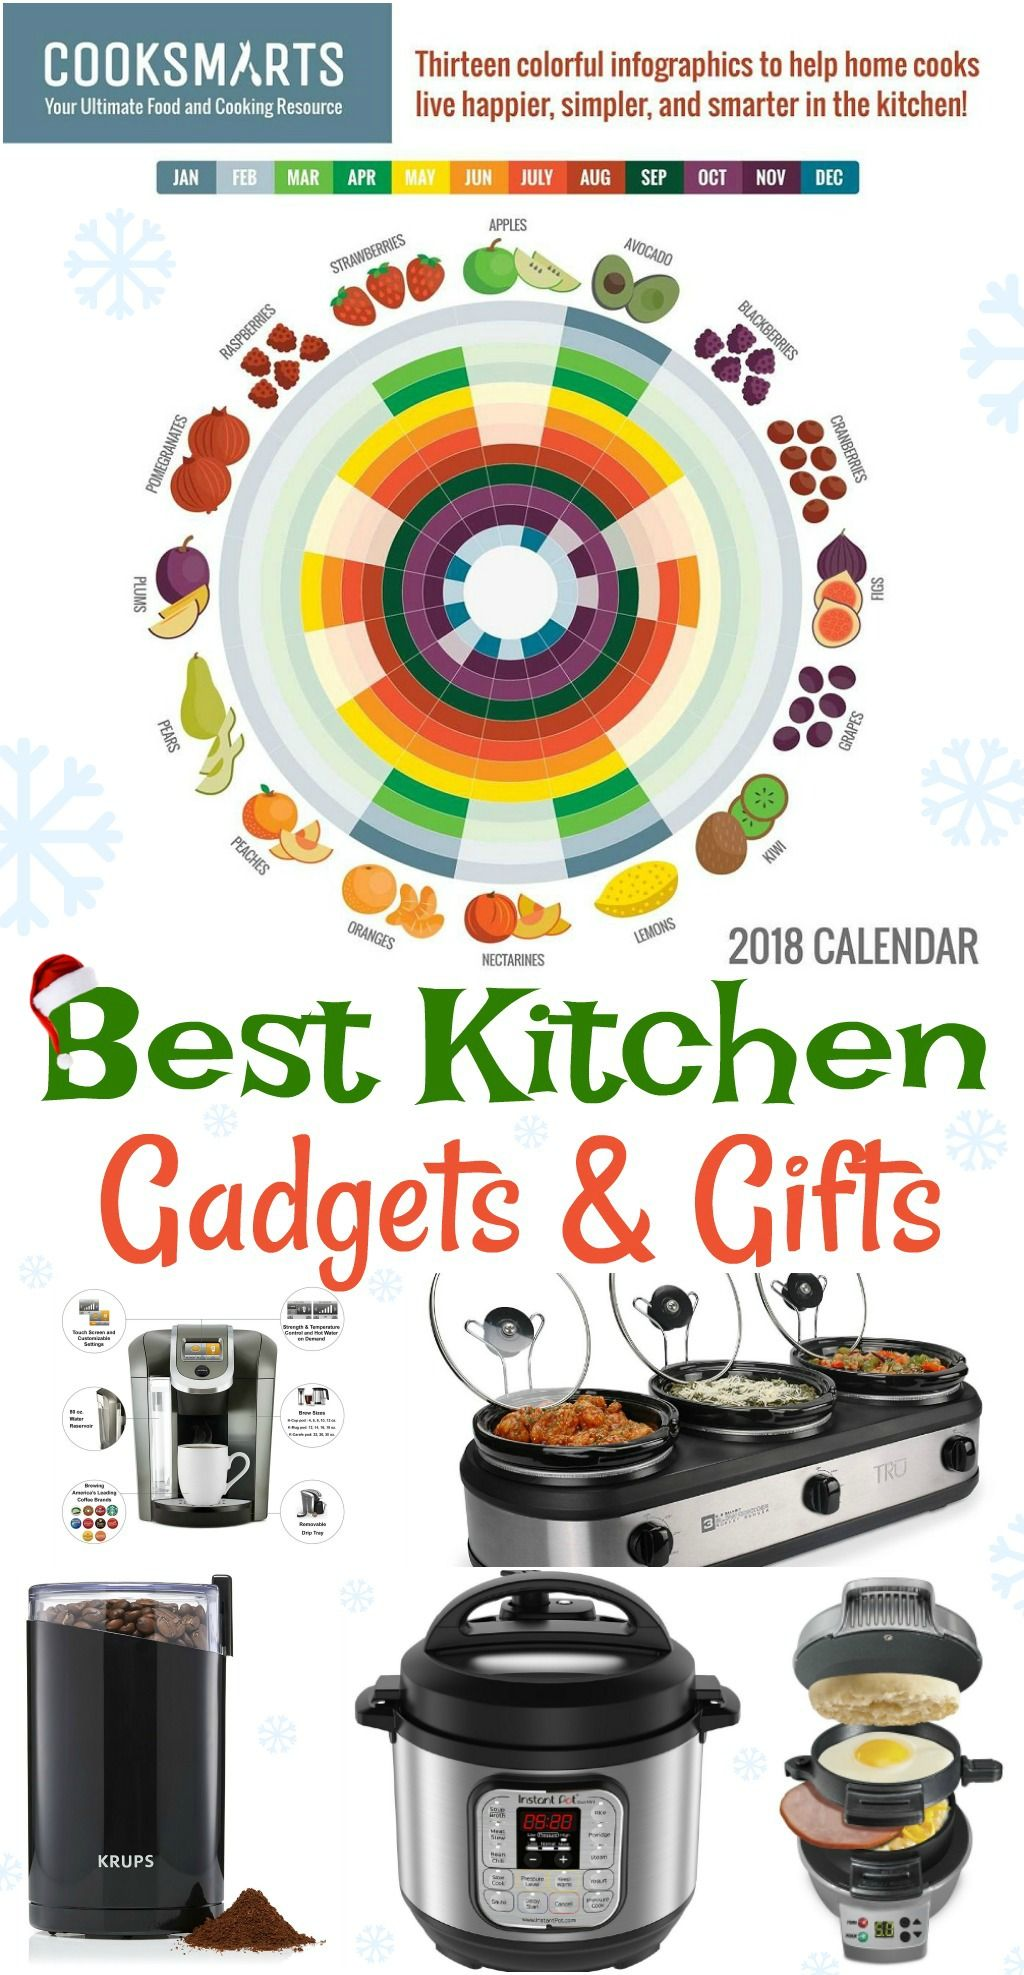 best kitchen gadgets and gifts for cooks these are the kitchen gifts and gadgets that every home cook needs and wants check it out - Best Kitchen Gifts